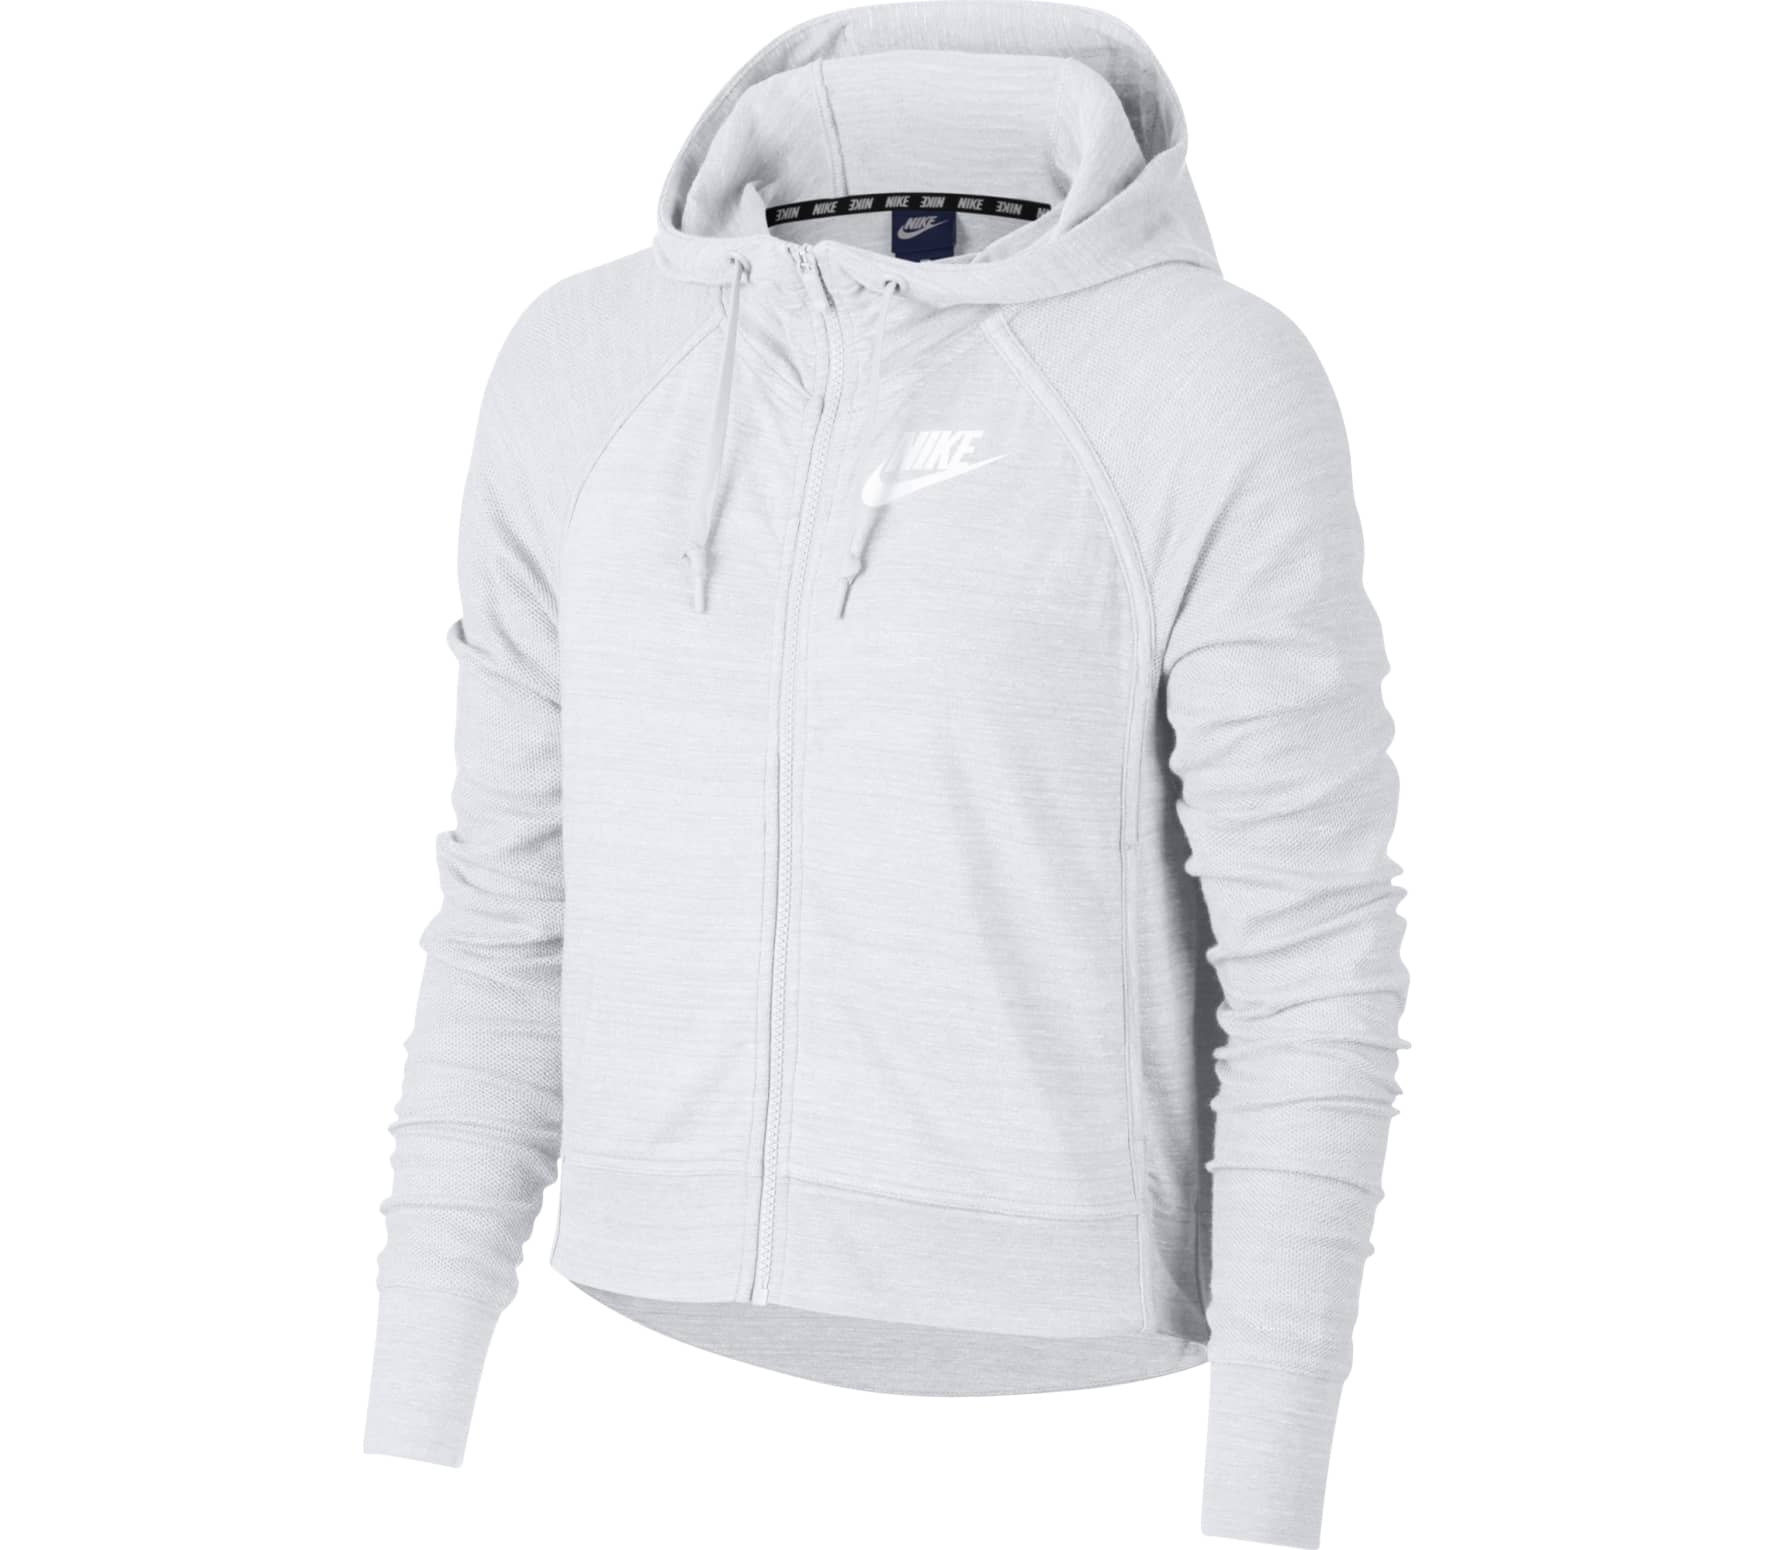 4f5dc60afb81 Nike - Sportswear Advance 15 women s hoodie (light grey) - buy it at ...